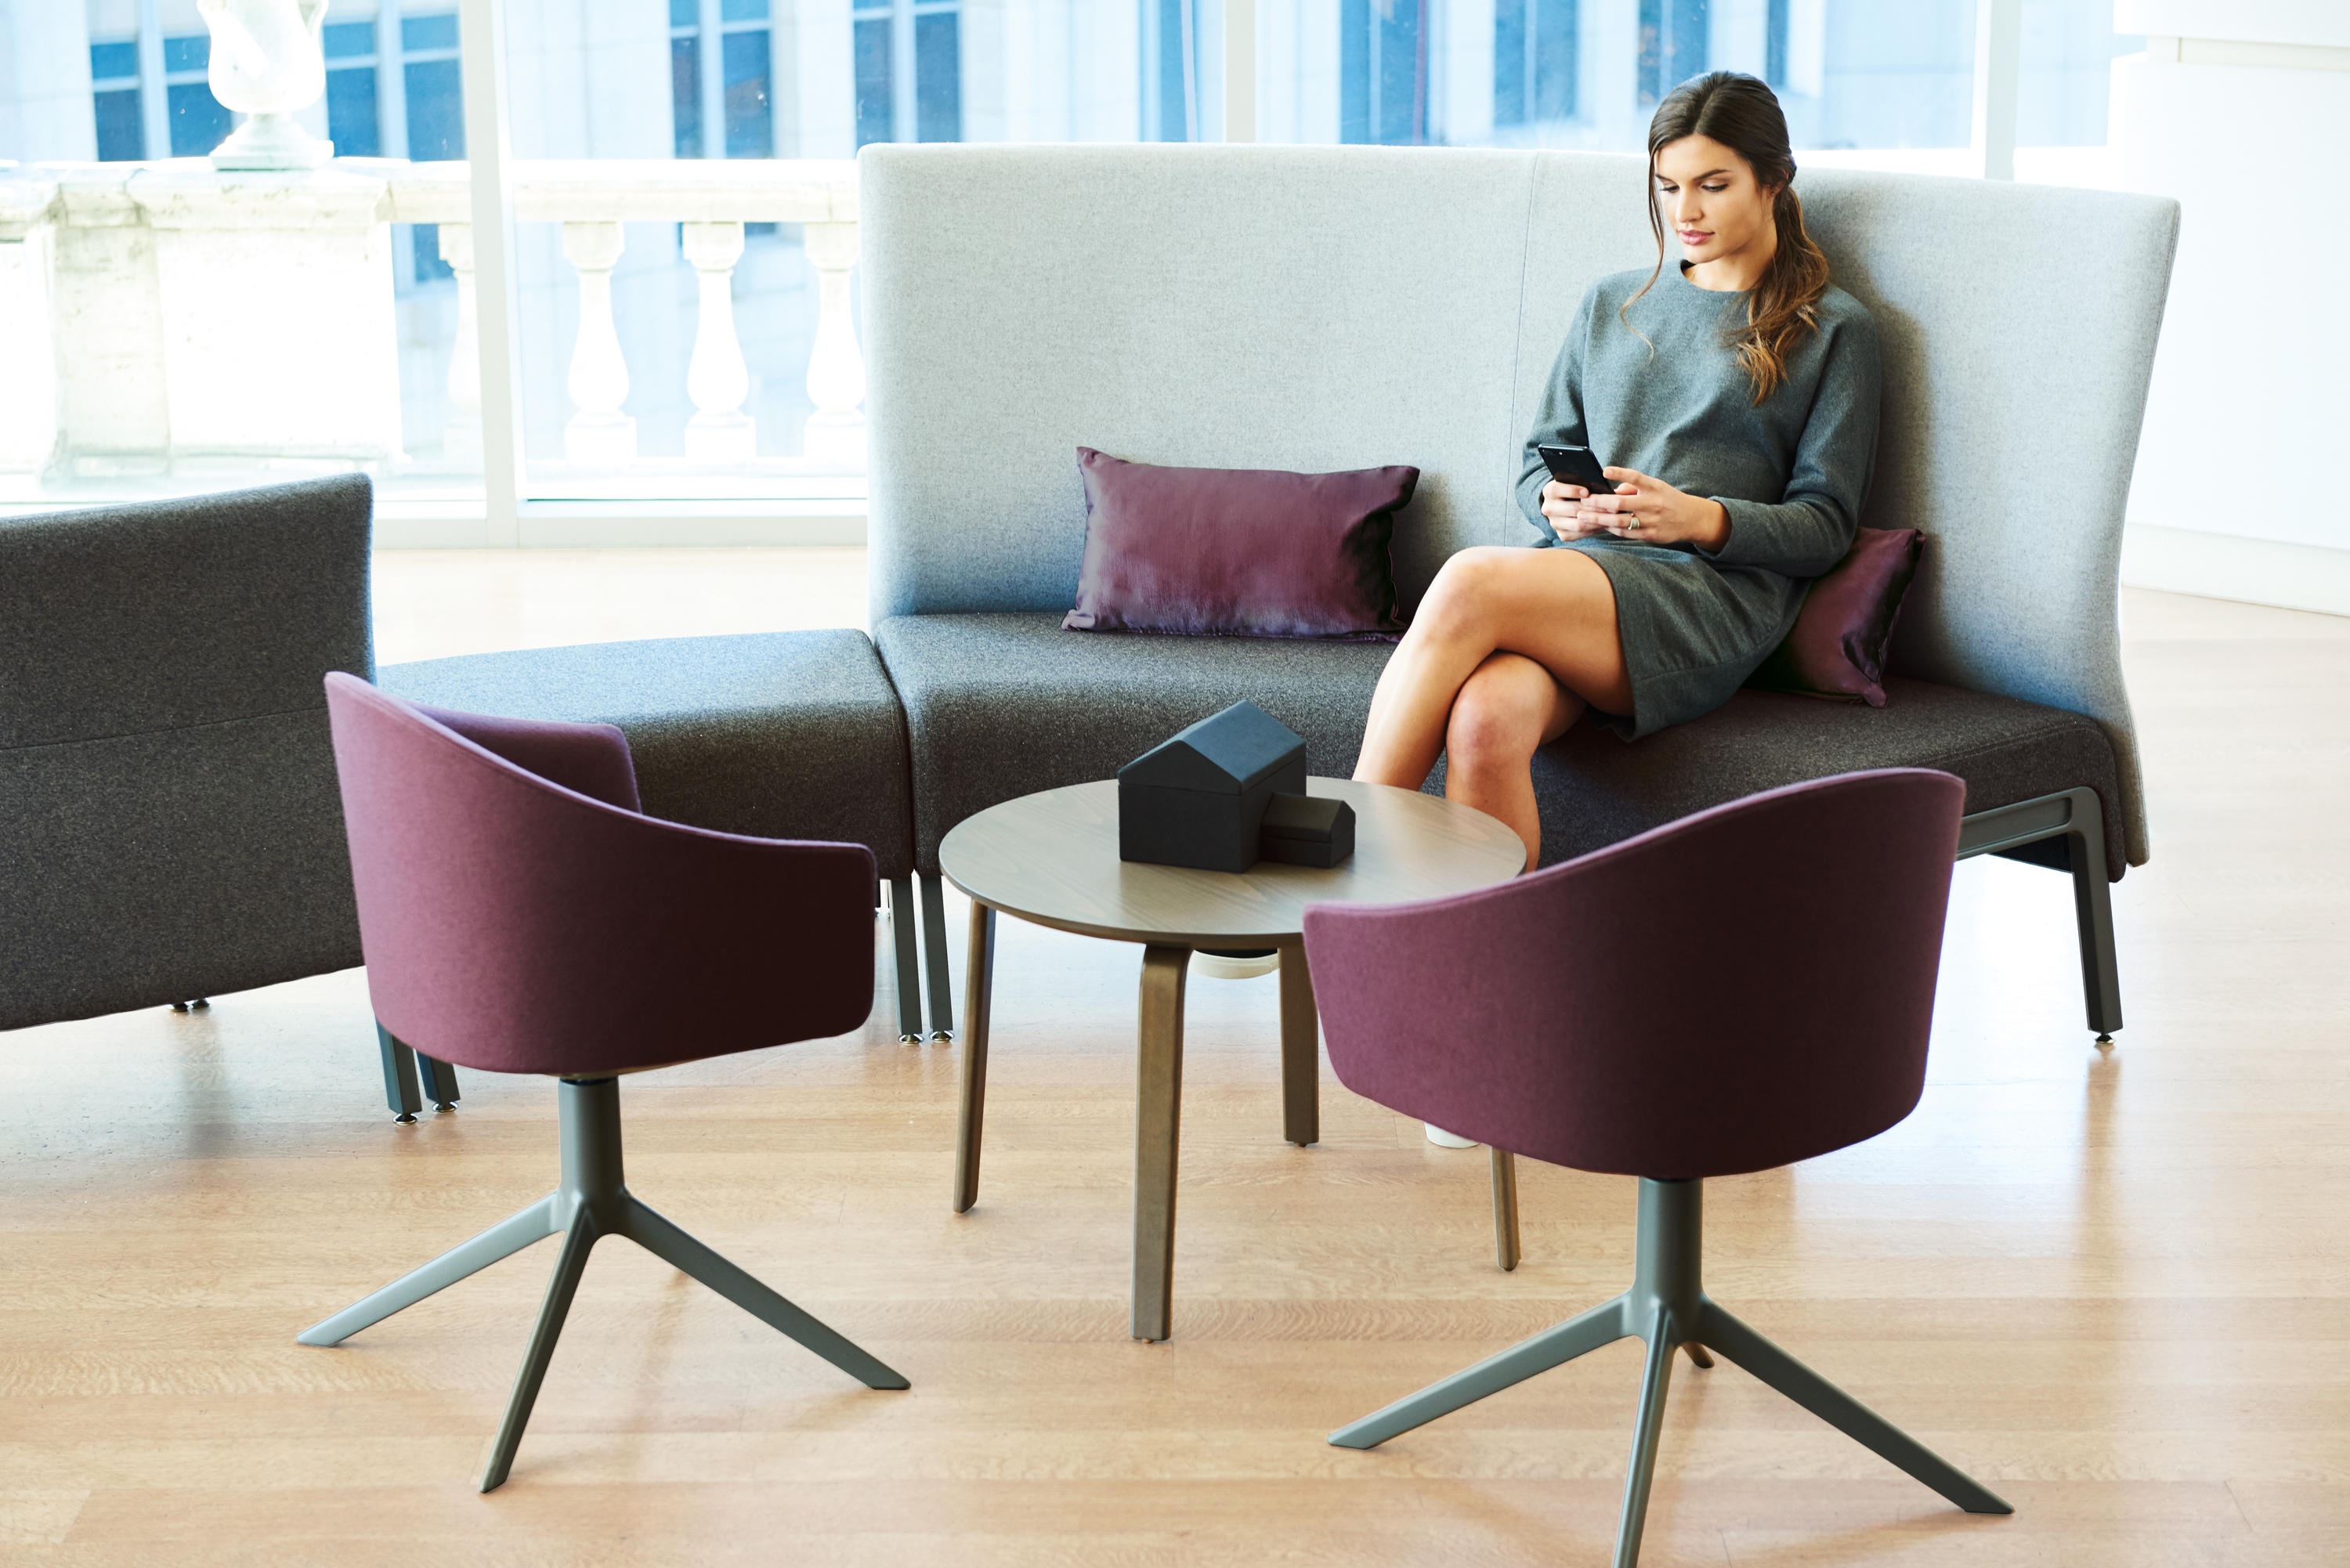 Zones Modular Seating Sofas From Teknion Architonic